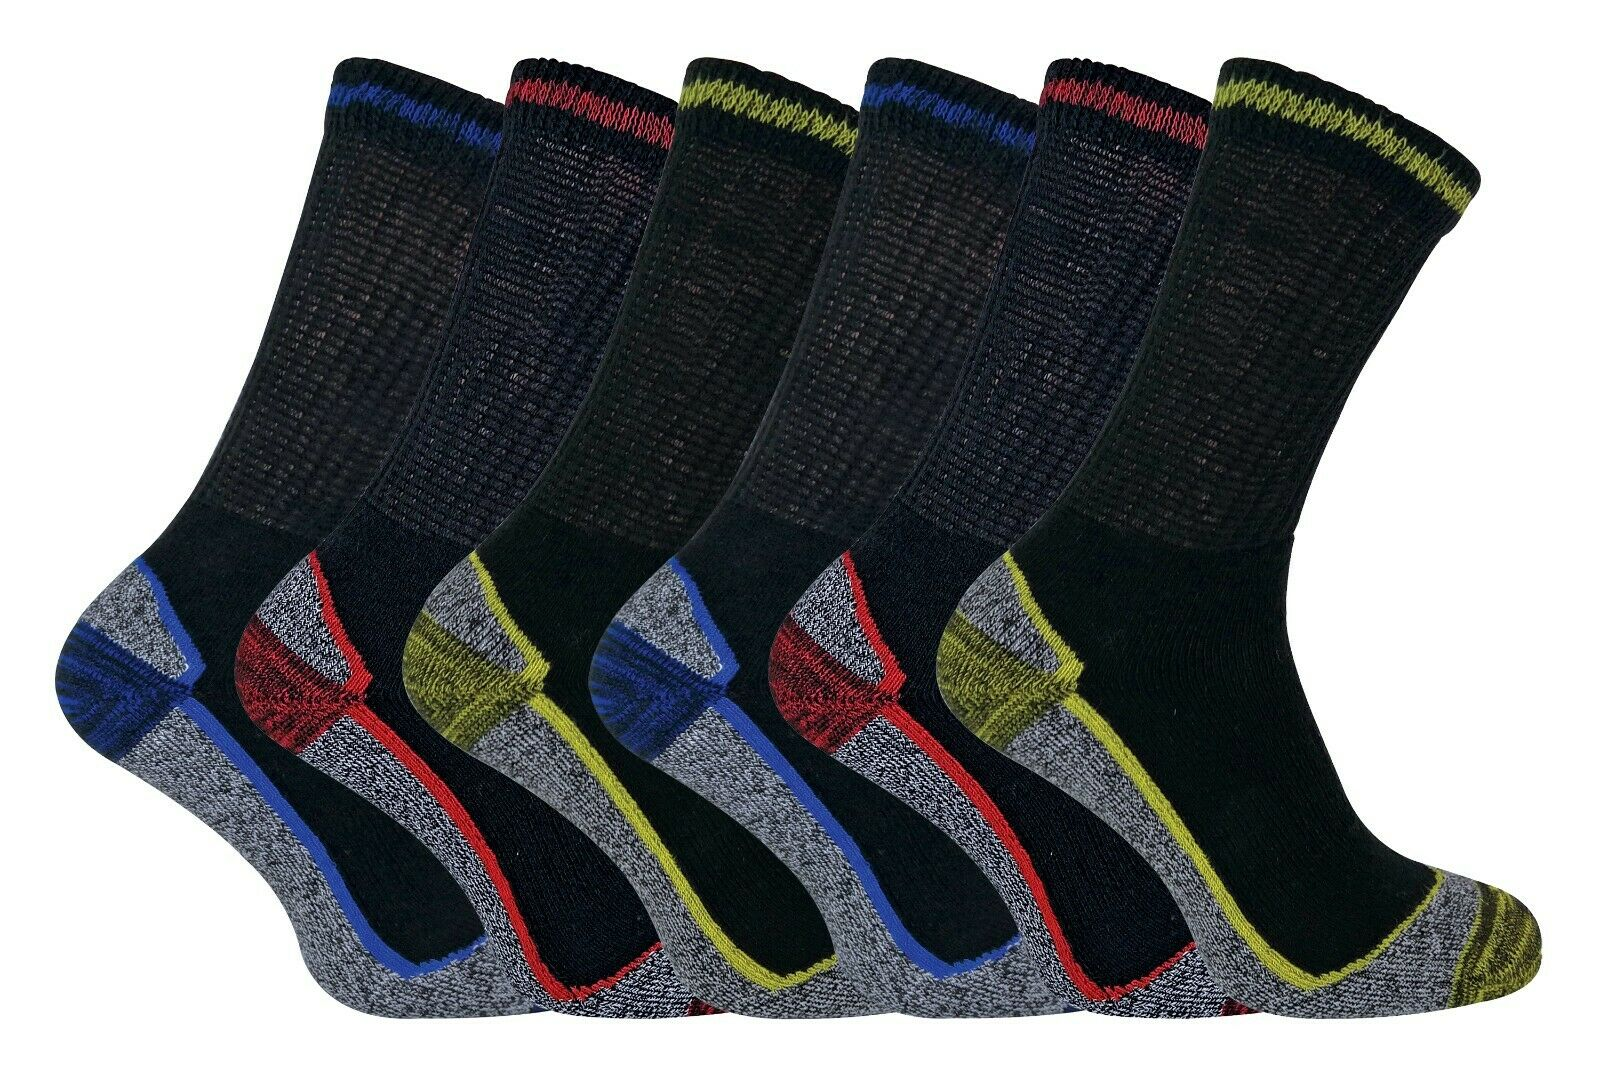 Image 01 - Mens-Breathable-Anti-Sweat-Heavy-Duty-Cotton-Bamboo-Work-Boot-Socks-for-Summer